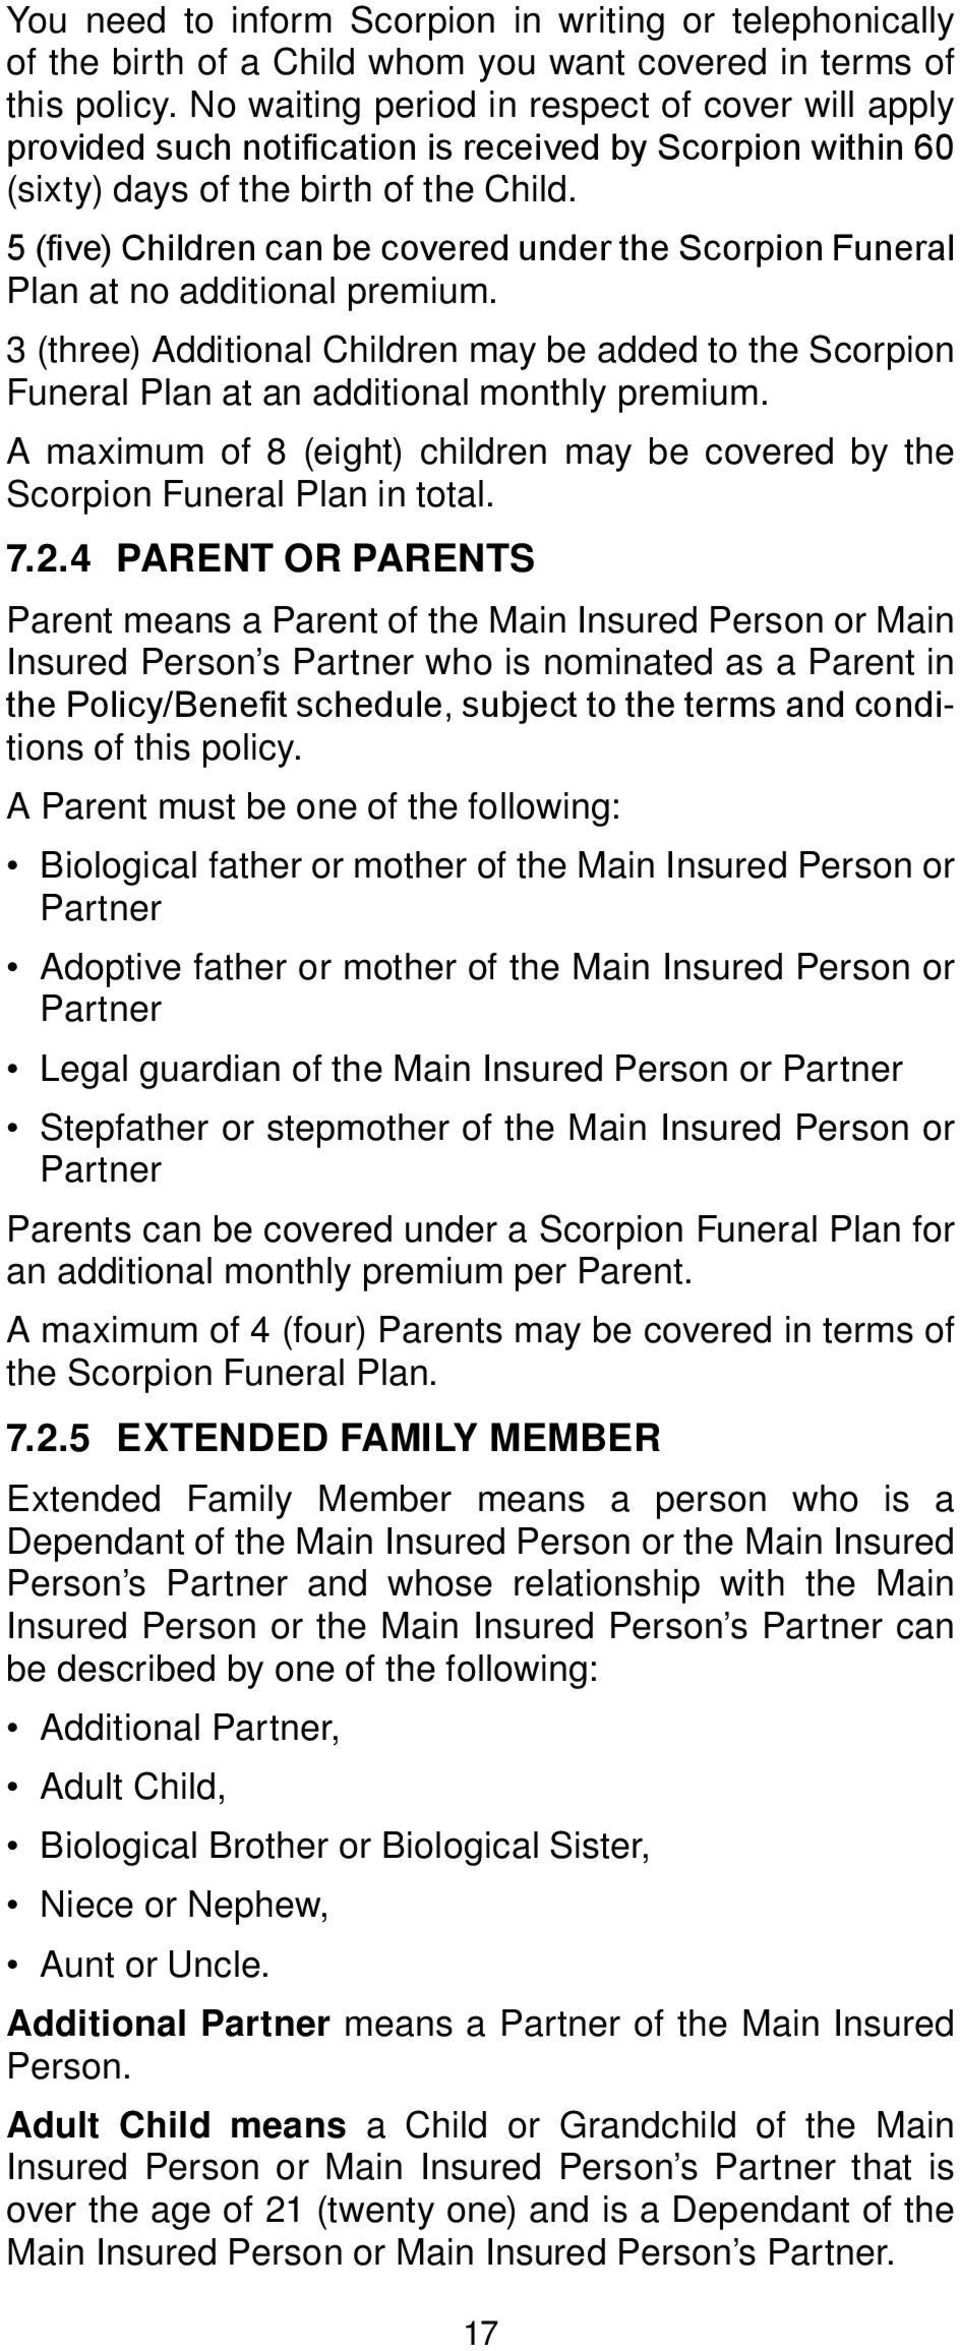 5 (five) Children can be covered under the Scorpion Funeral Plan at no additional premium. 3 (three) Additional Children may be added to the Scorpion Funeral Plan at an additional monthly premium.